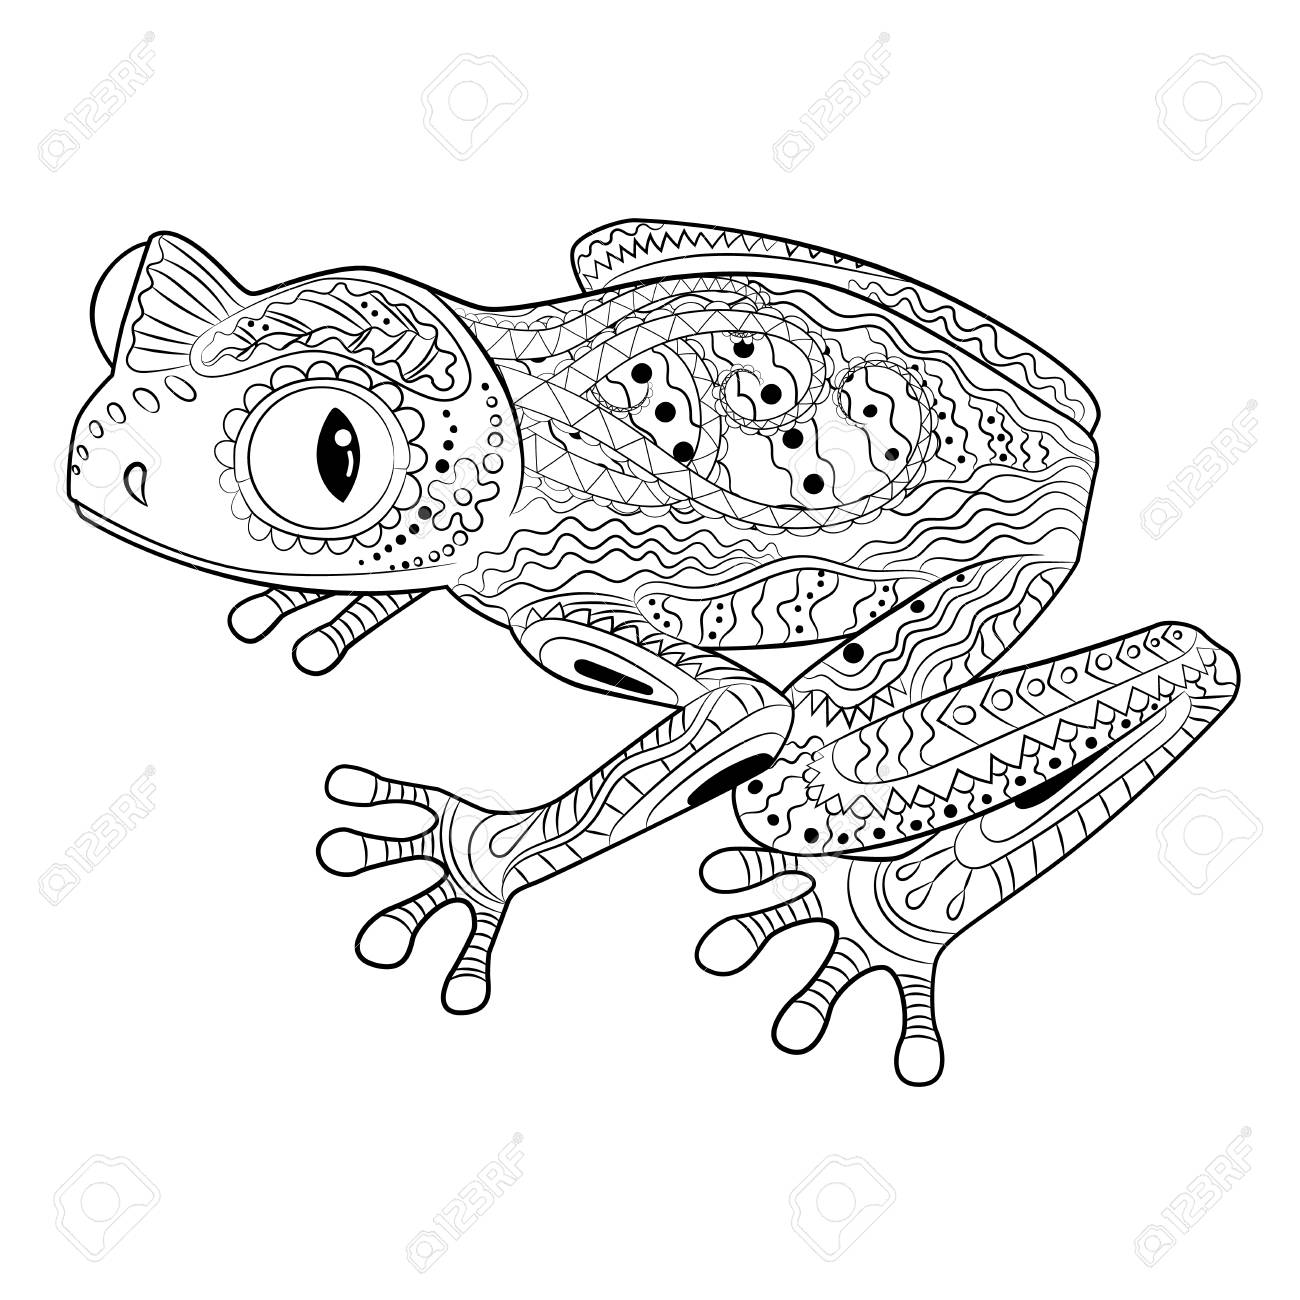 Coloring page with frog in zentangle style. - 104267679